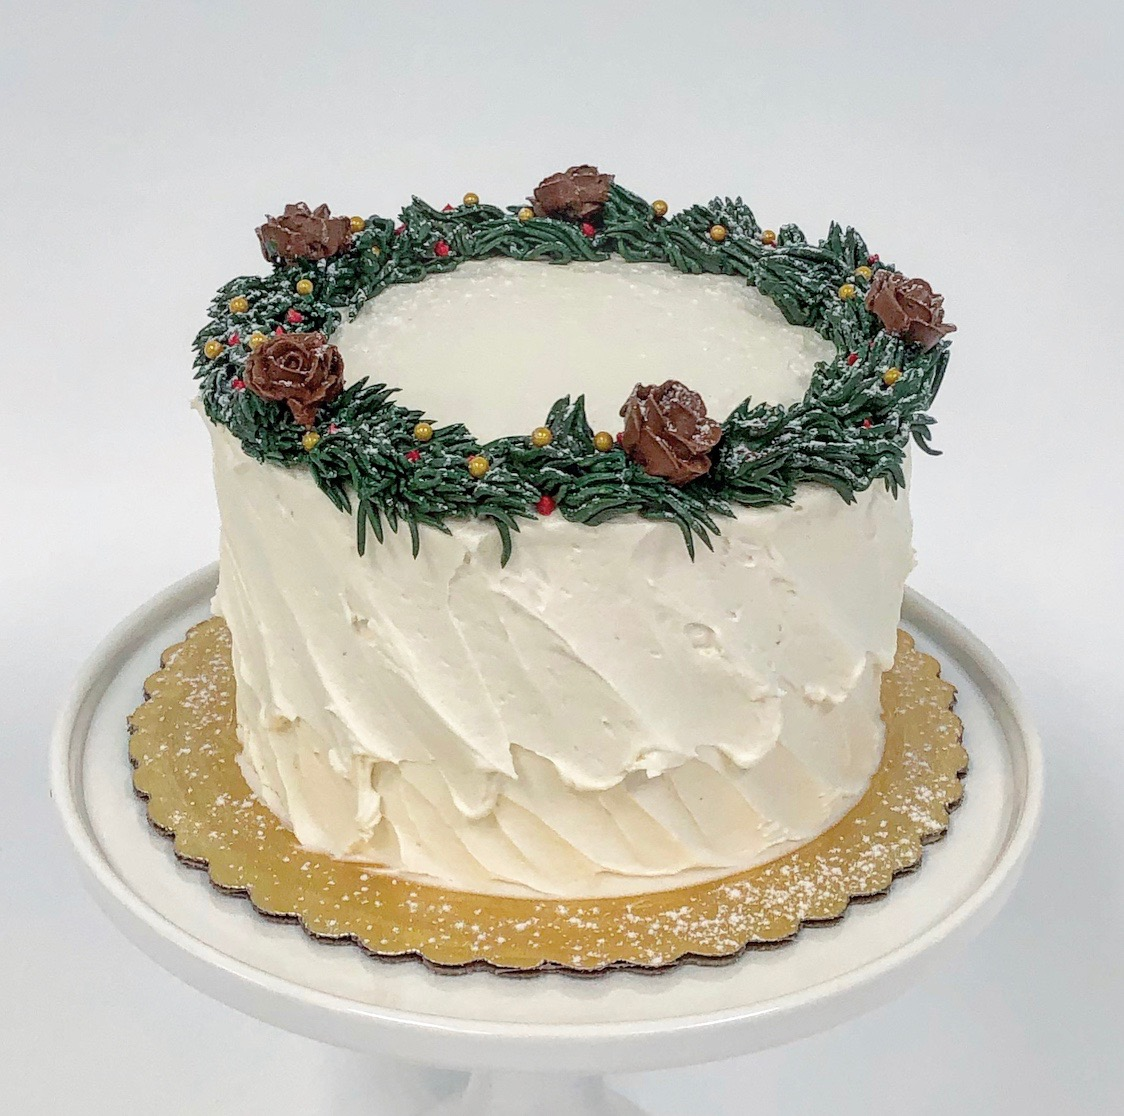 Pinecone Wreath Cake